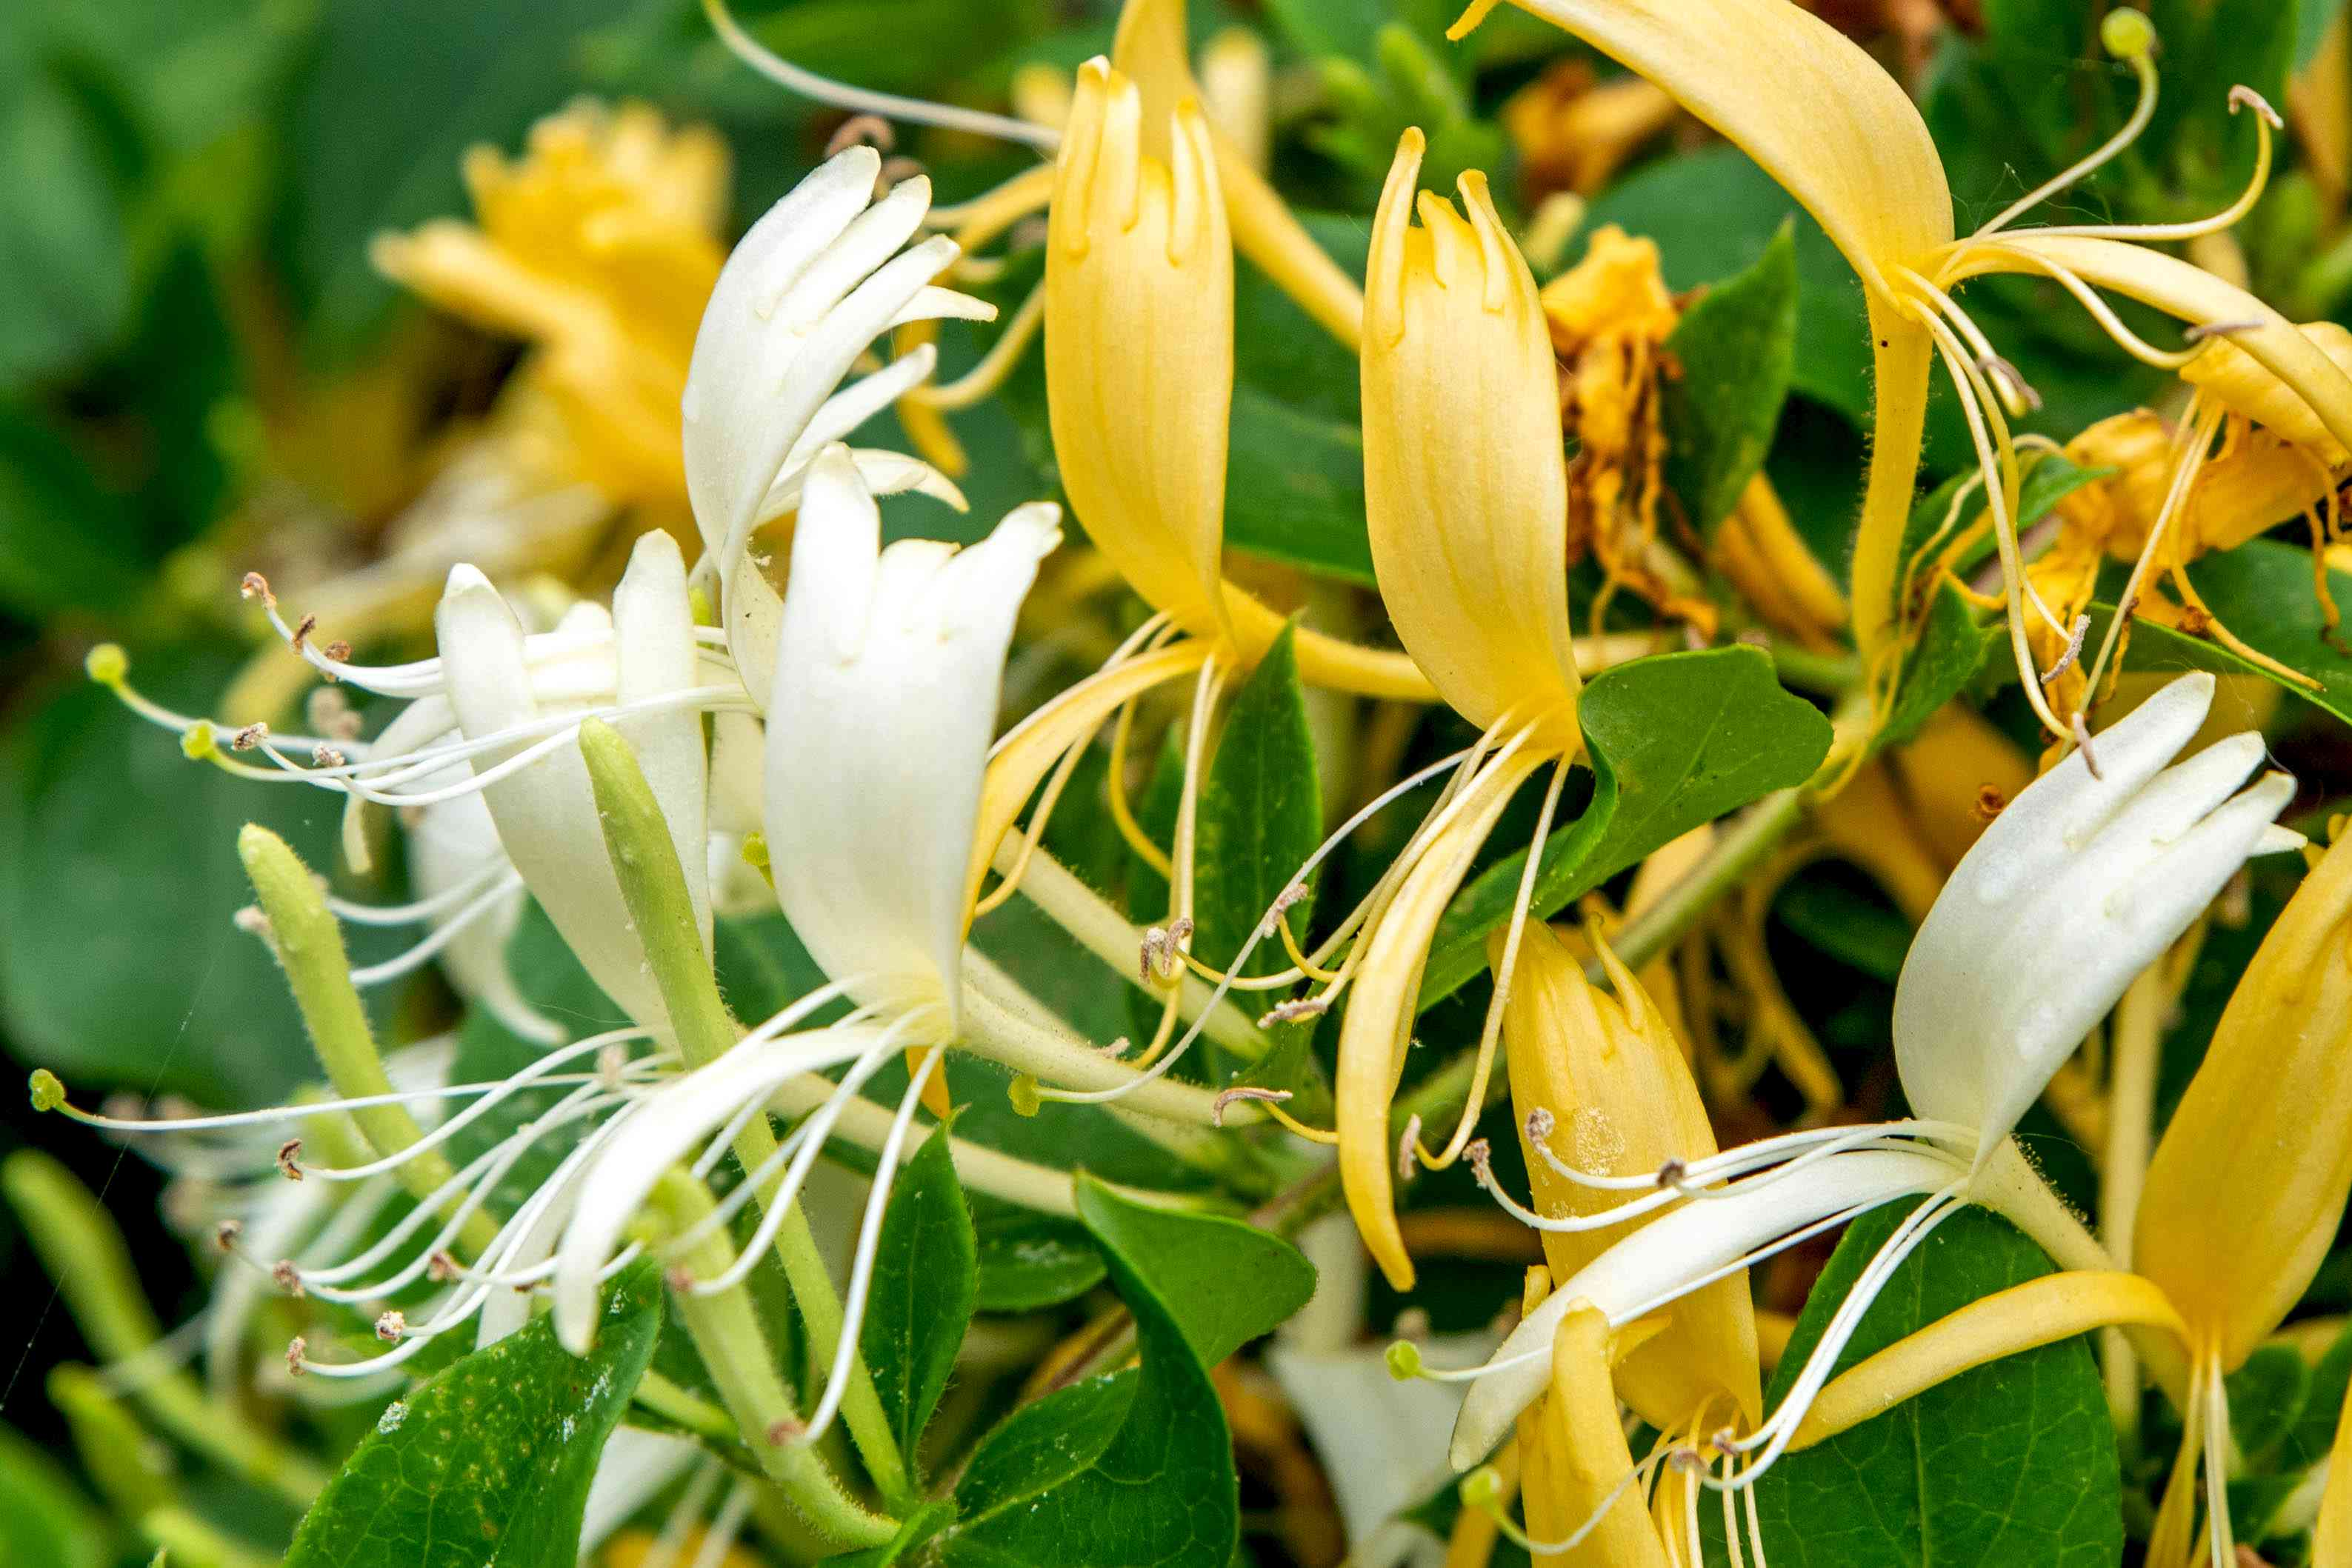 Japanese honeysuckle flowers with white and yellow bi-petals with long thin anthers